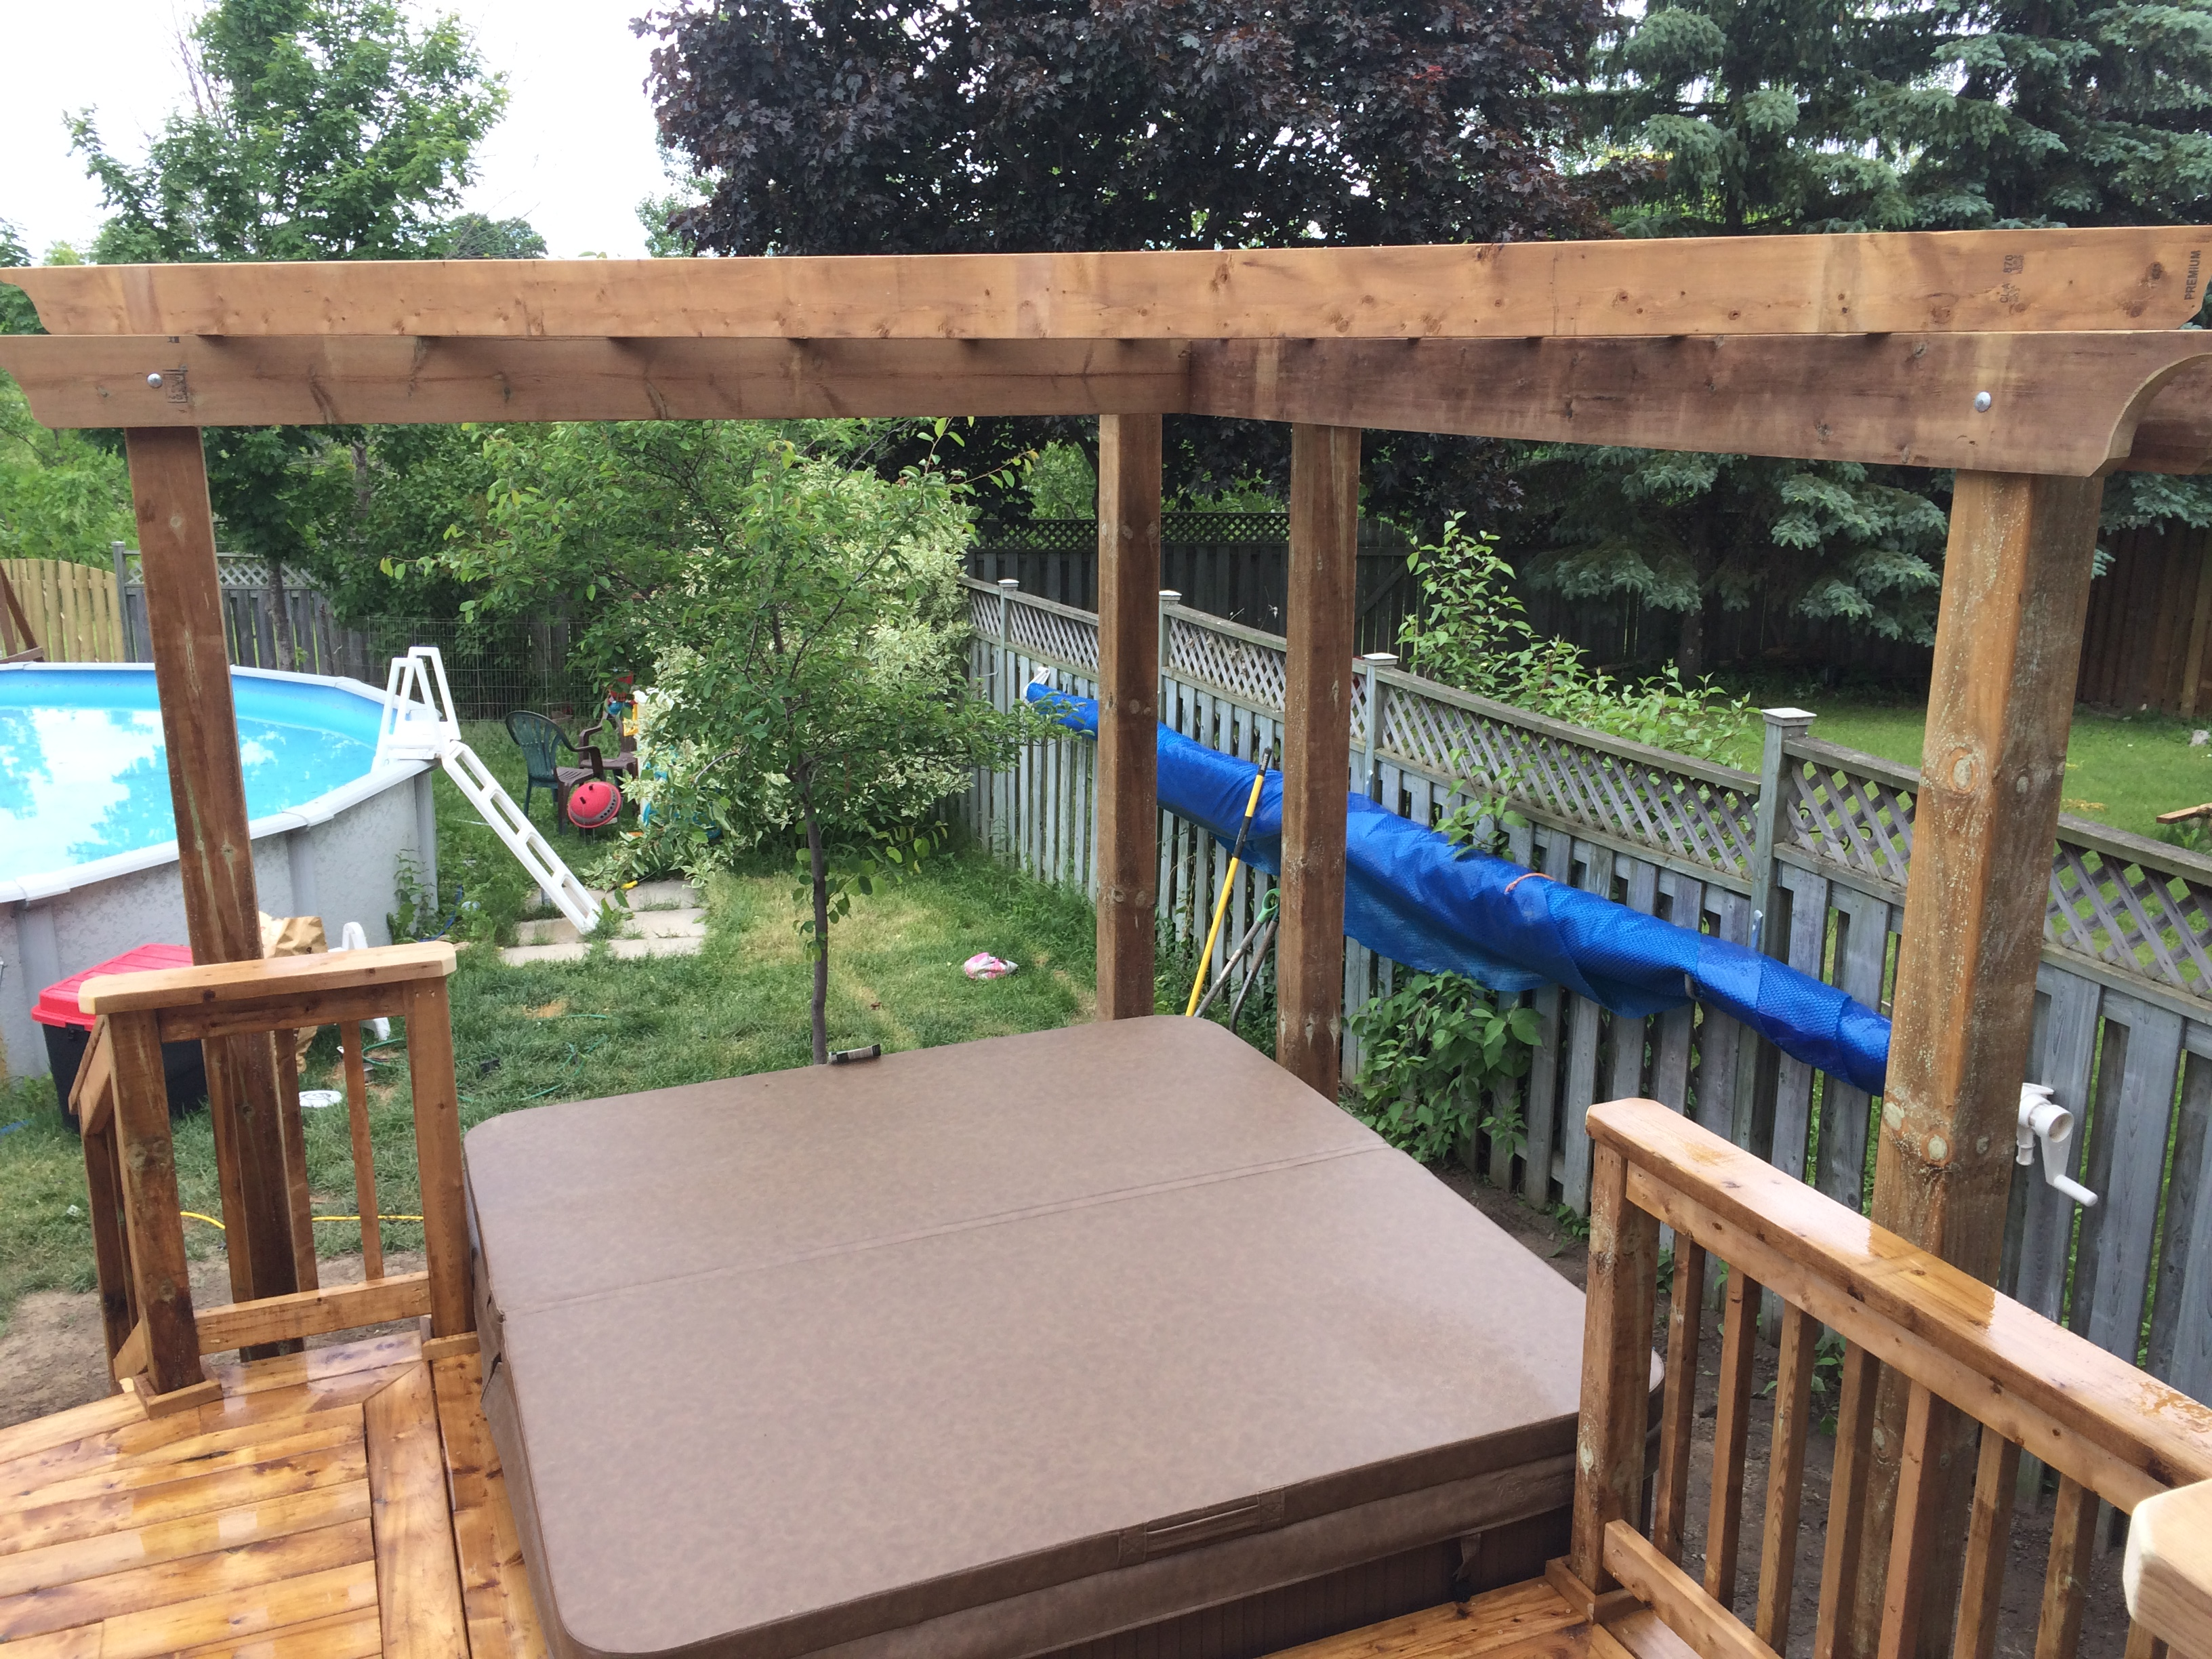 Keswick Deck - After Construction View From Deck Looking Towards Rear and Pergola